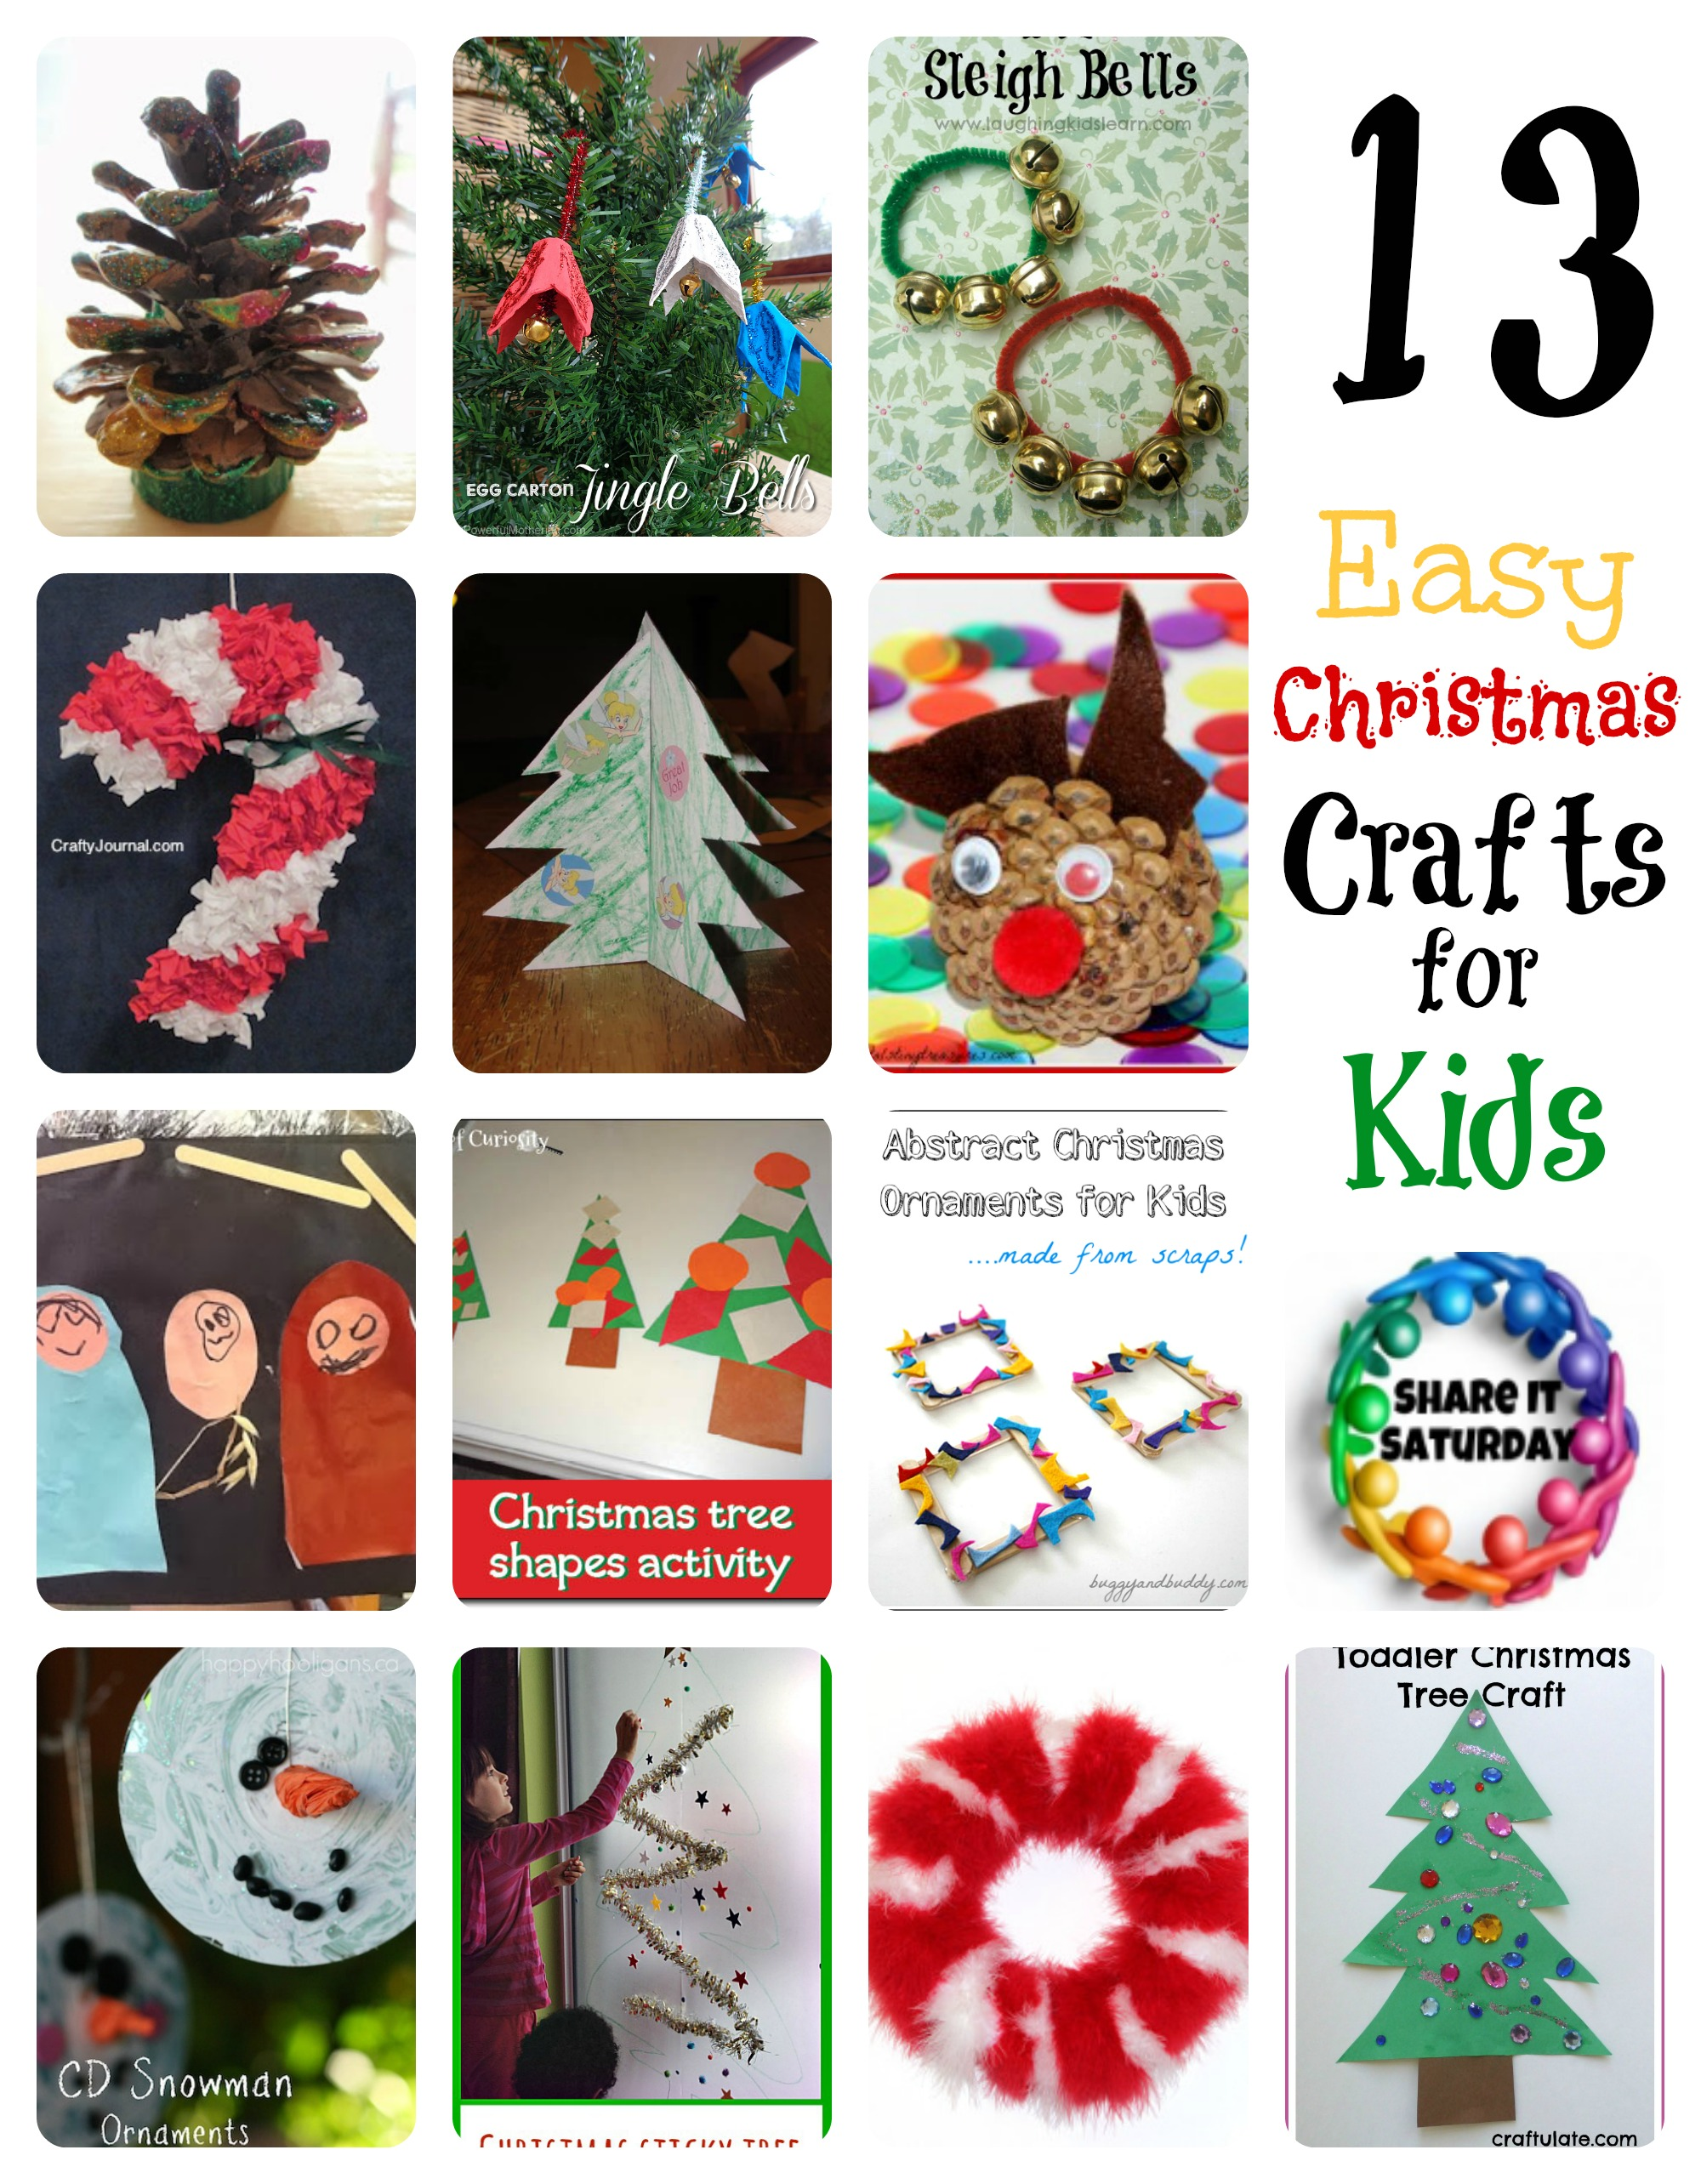 Christmas crafts for kids 25 fun and easy holiday crafts Christmas crafts for kids to make at home